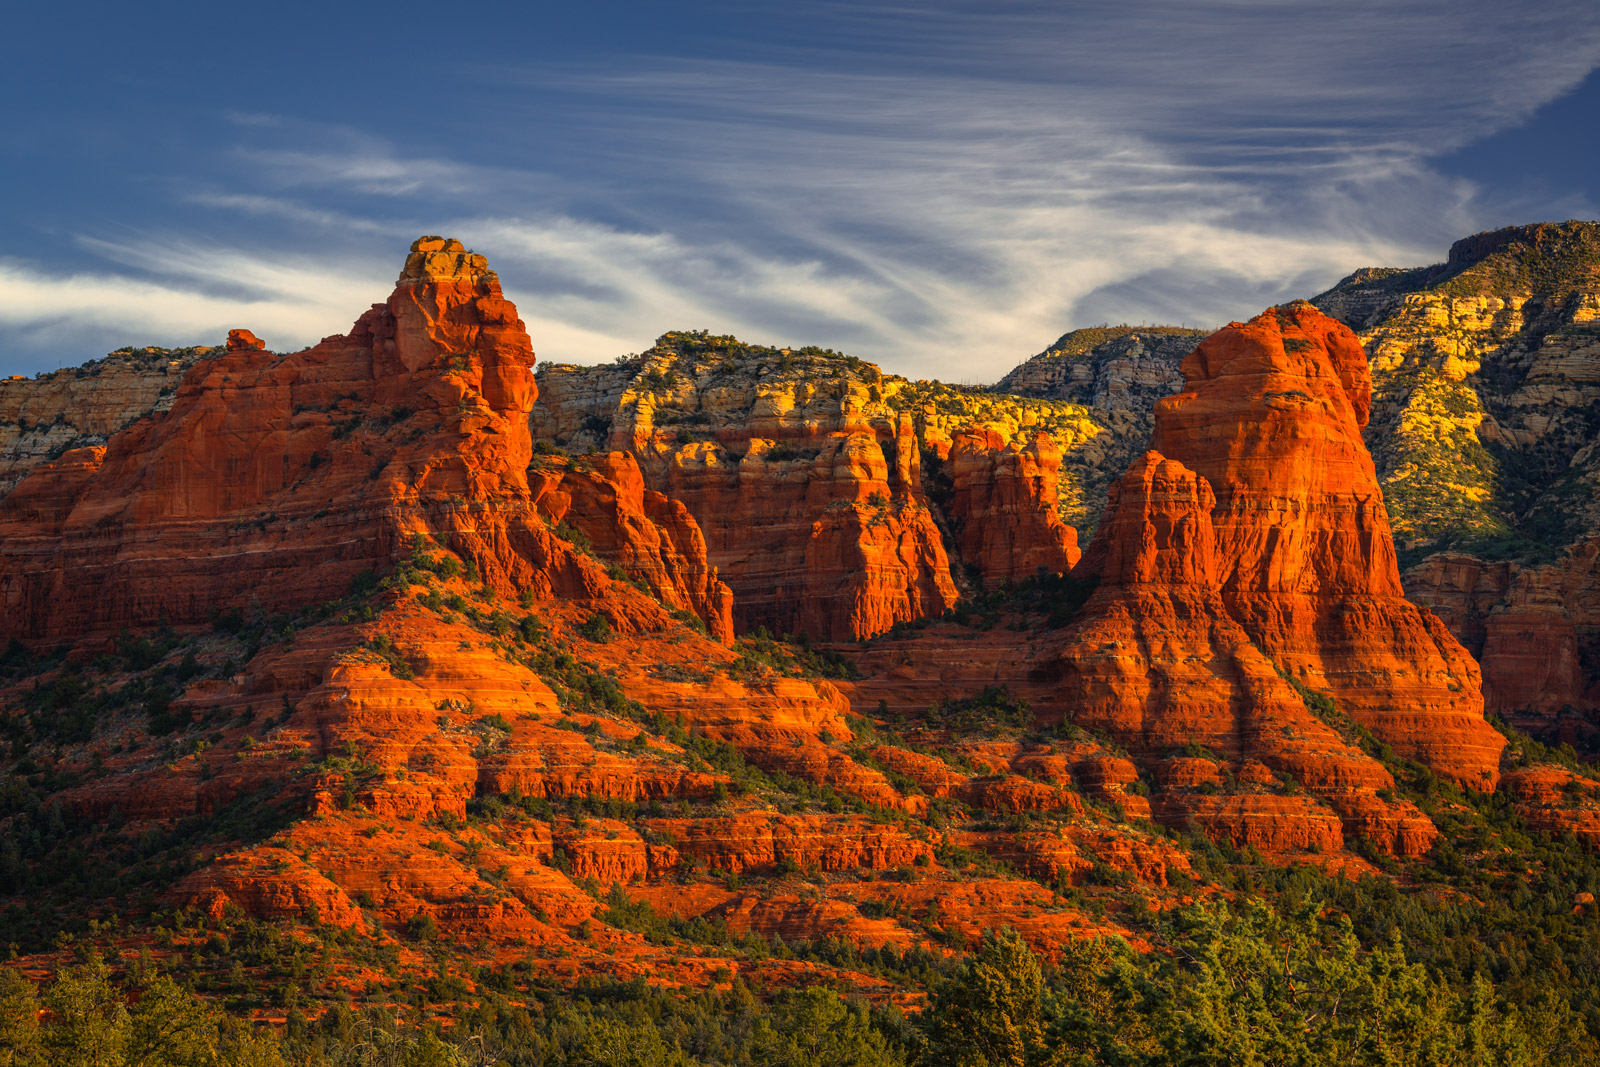 Arizona, Sedona, Red Rock, Sunrise, Clouds, limited edition, photograph, fine art, landscape, photo